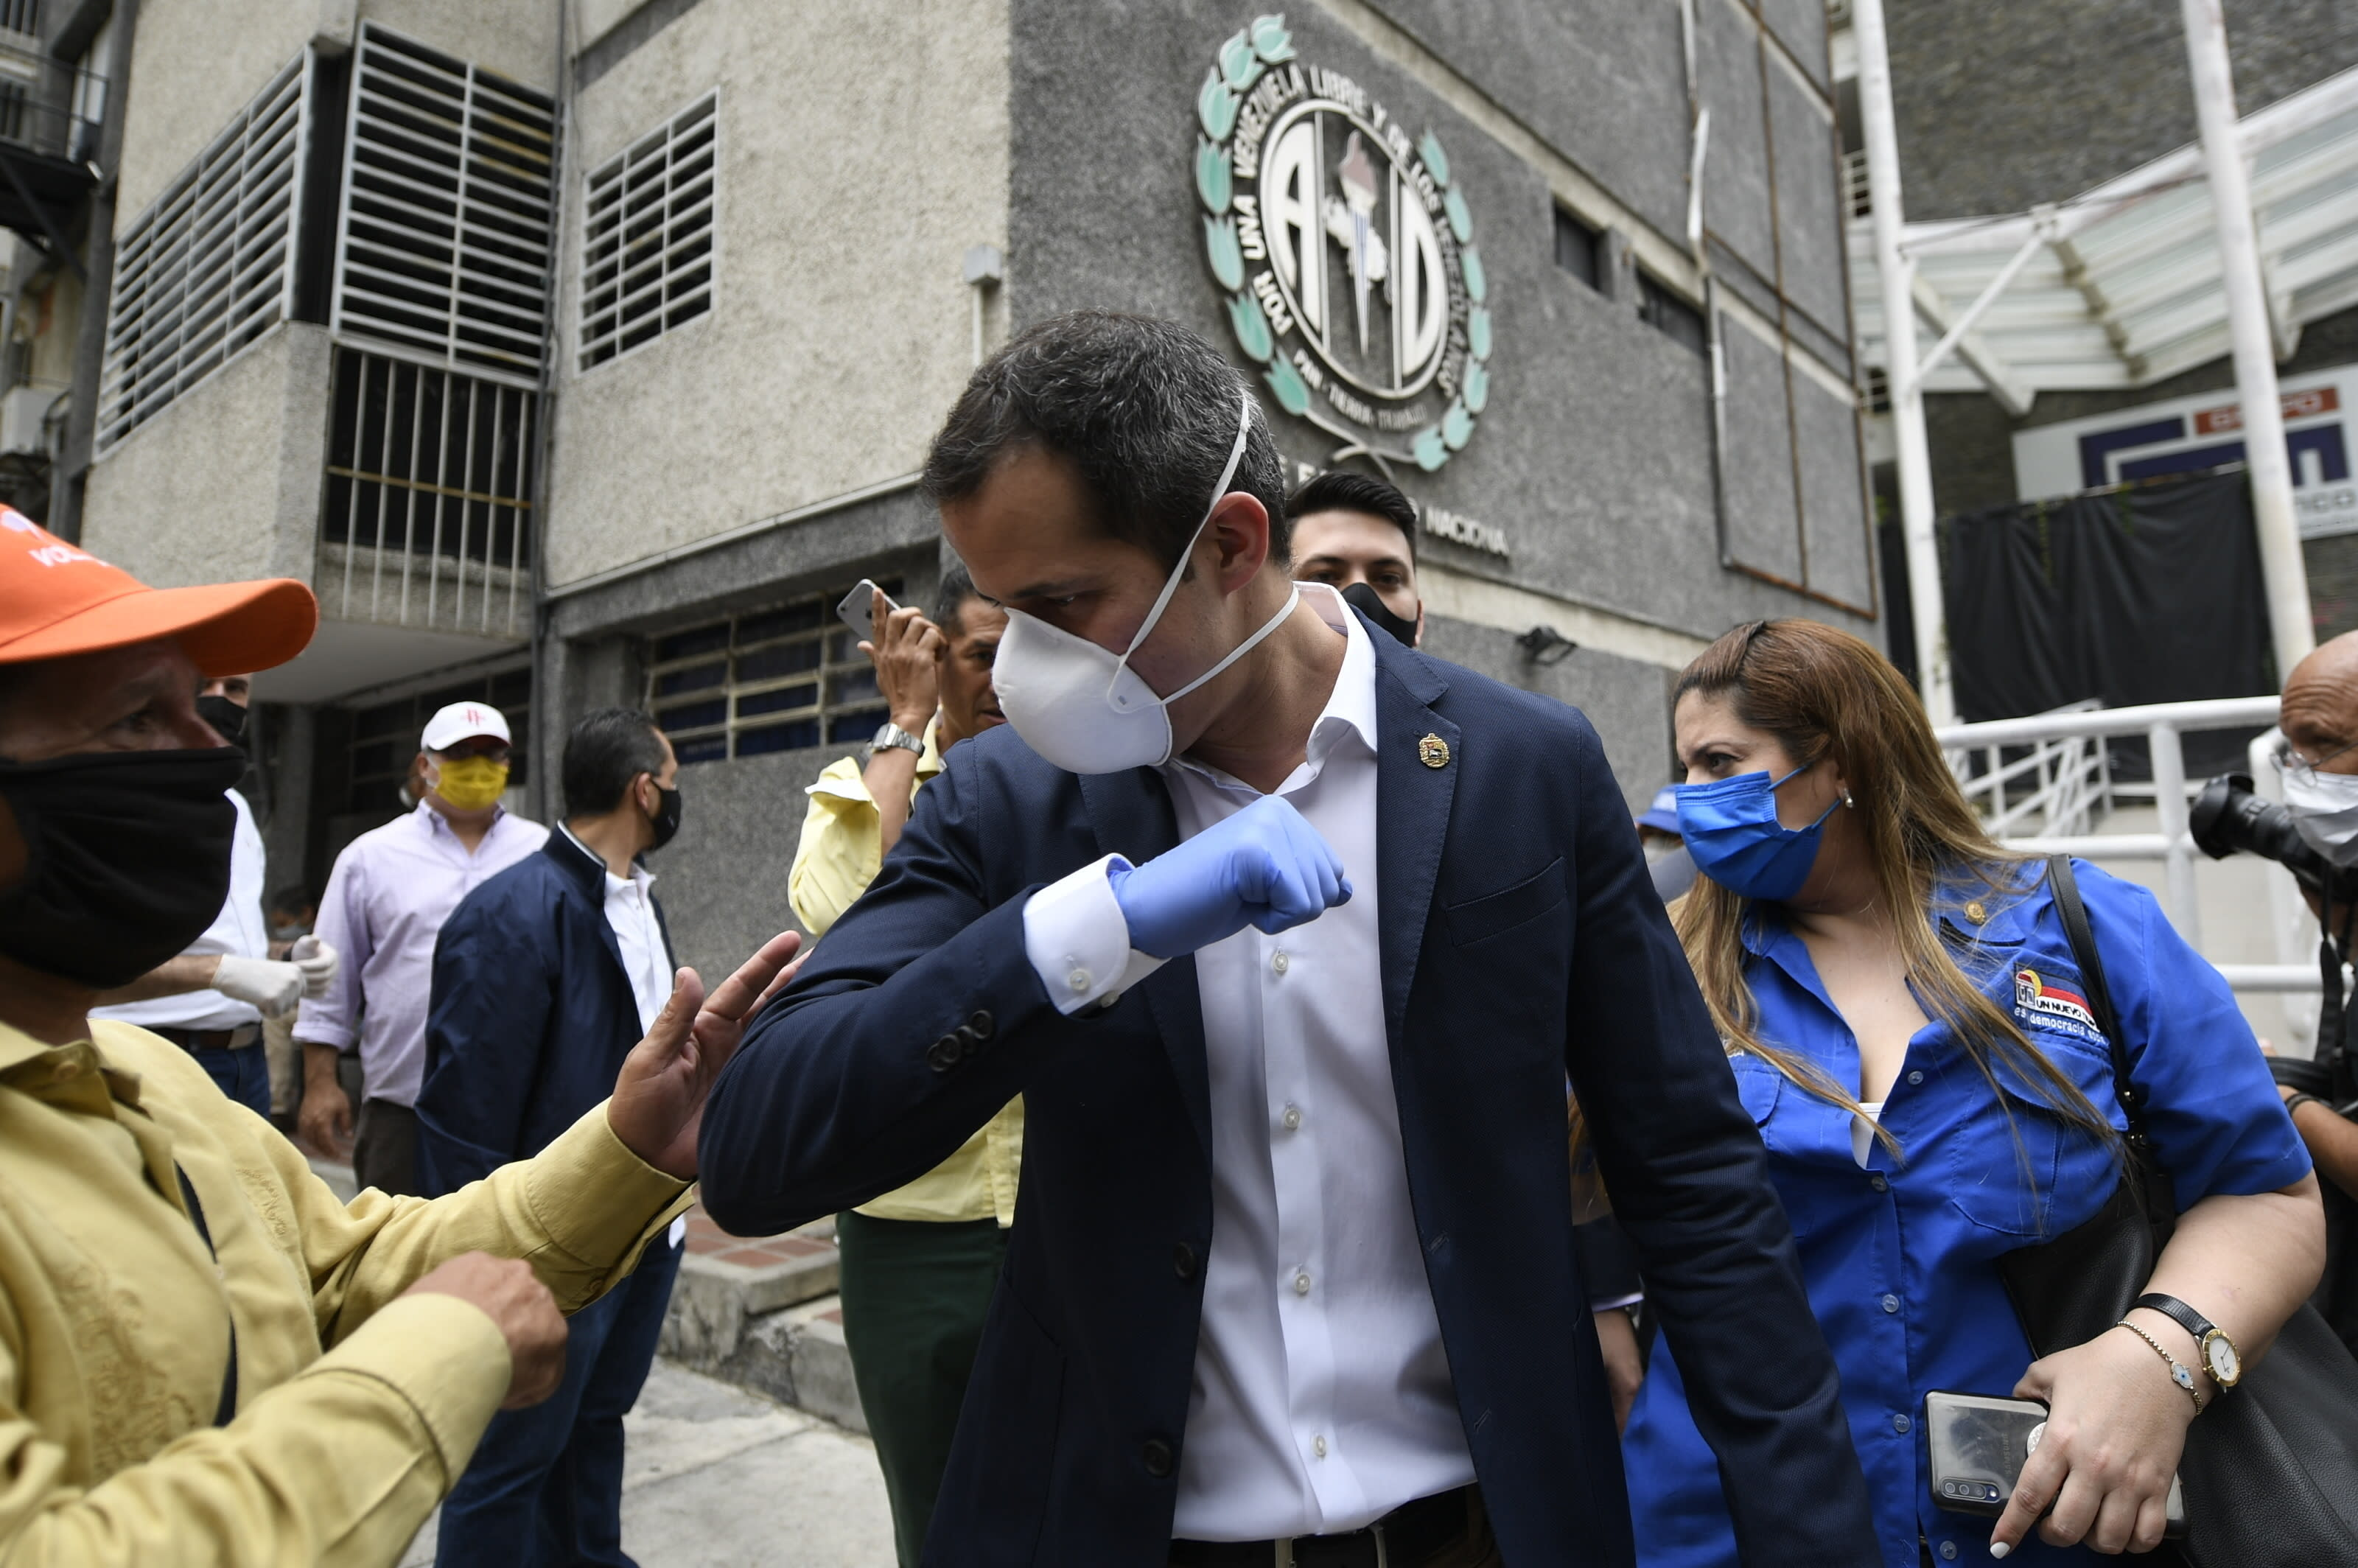 FILE - In this June 17, 2020 file photo, Venezuelan opposition leader Juan Guiado greets a supporter after a visit to the headquarters of Democratic Action political party in Caracas, Venezuela, the day after Venezuela's Supreme Court ordered its takeover ahead of parliamentary elections expected this year. More than a year after the U.S.-backed politician rose up to oust Venezuelan President Nicolás Maduro, the socialist leader holds a yet stronger grip on power, thanks partly to the novel coronavirus. (AP Photo/Matias Delacroix, File)